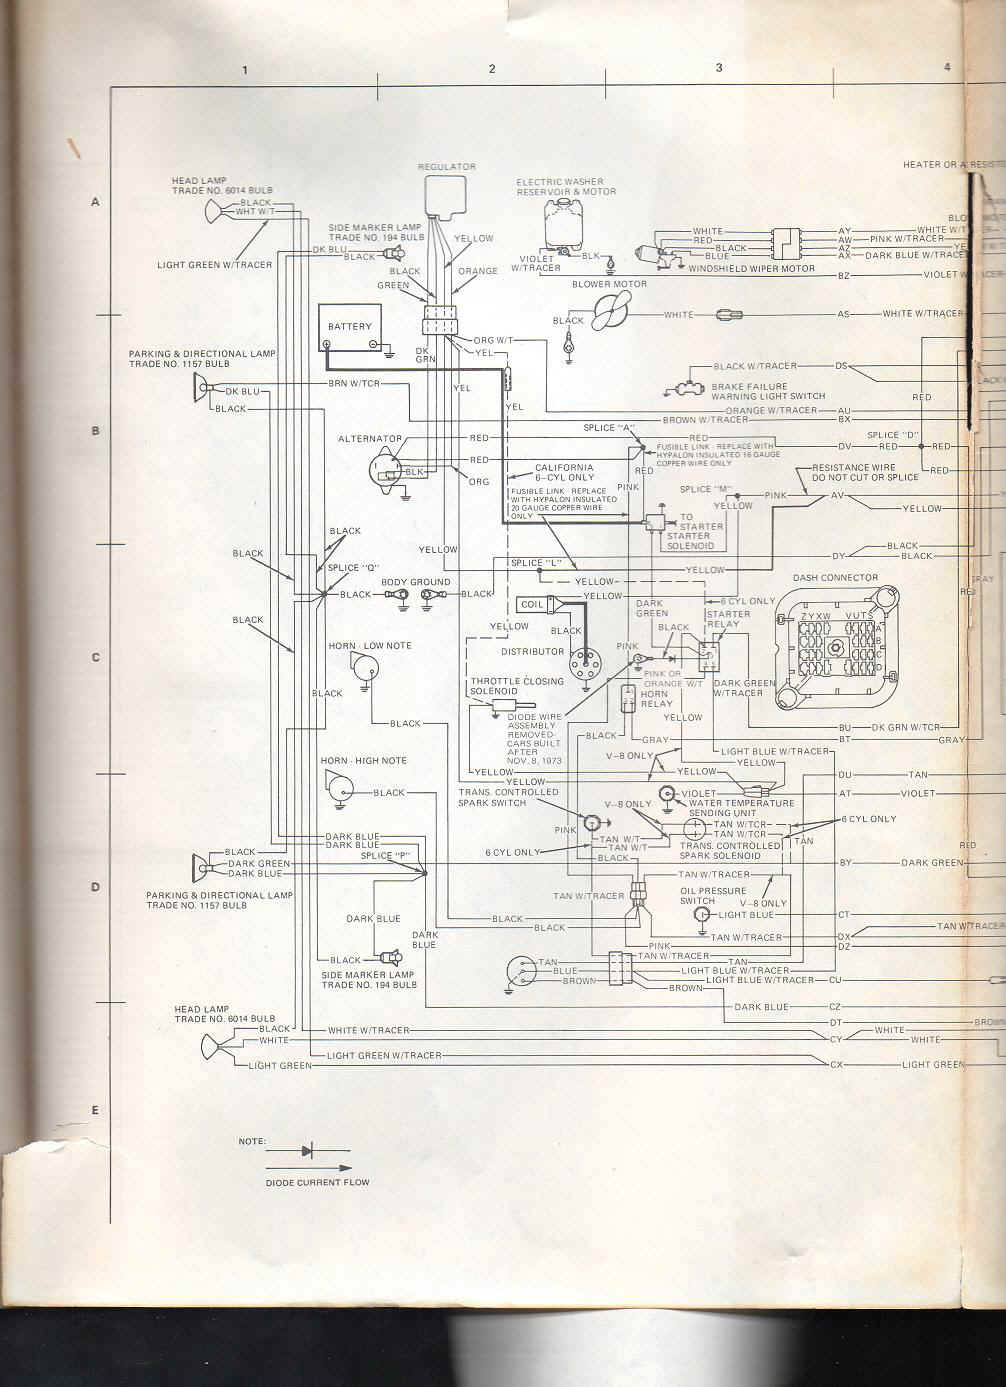 1973 amc wiring diagram wiring diagram experts